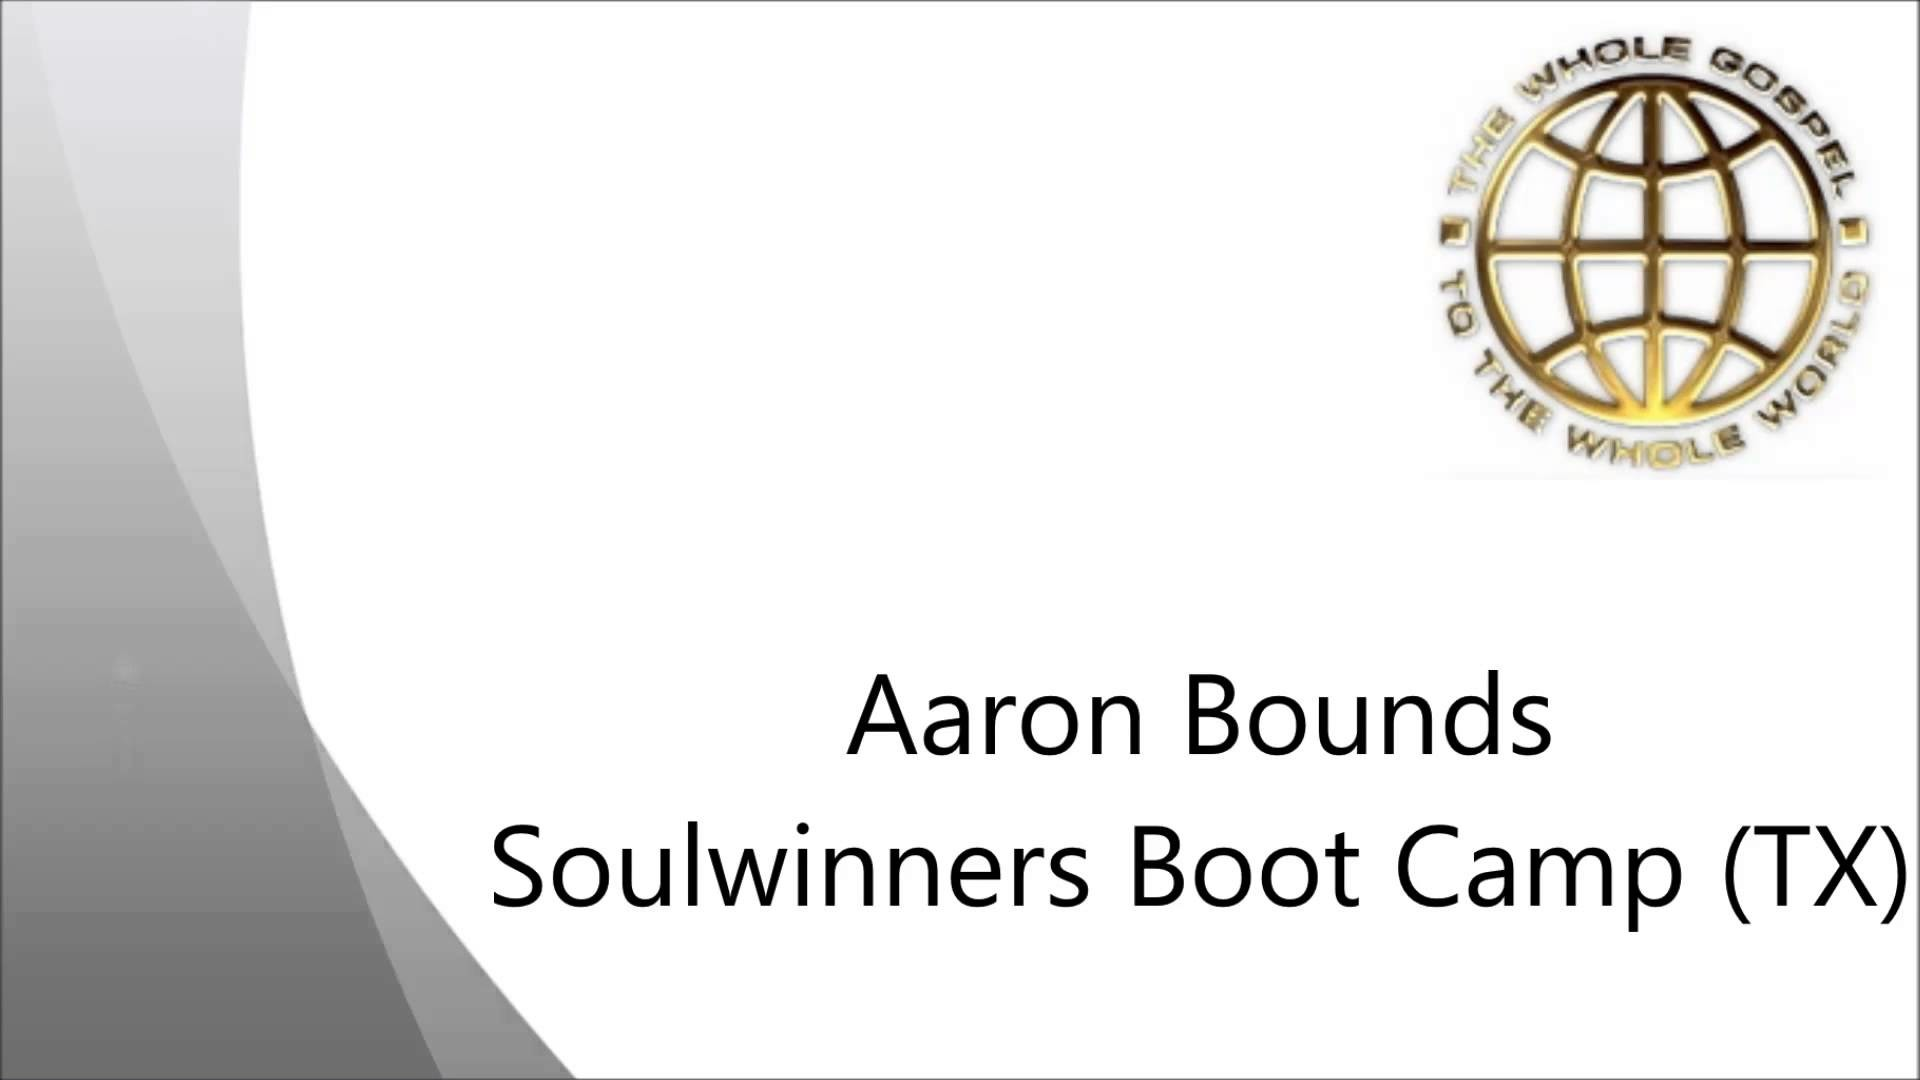 Aaron Bounds – Soulwinners Bootcamp – TX (UPCI) – FULL MESSAGE